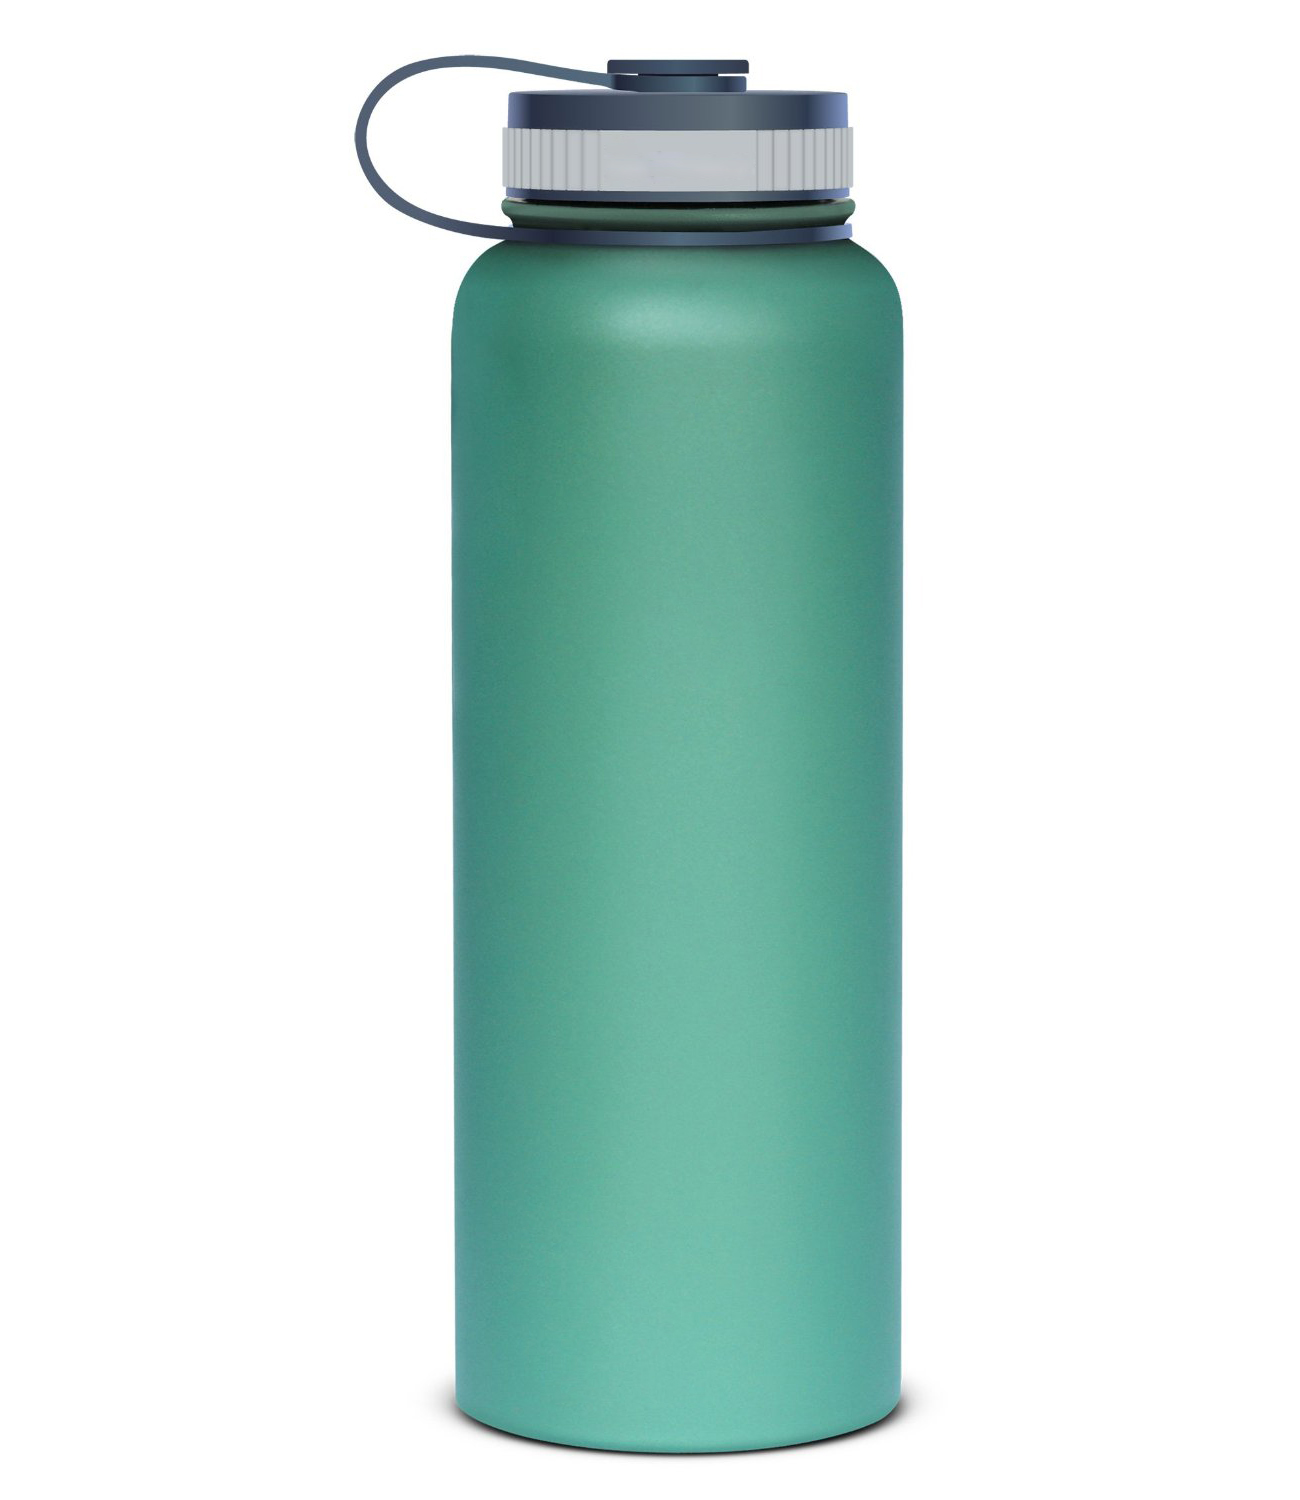 ZC-ZS-C No-Sweat, Leak-Proof, Dishwasher Safe Water Bottle Canteen - Keep Cool or Stay Hot Up To 24